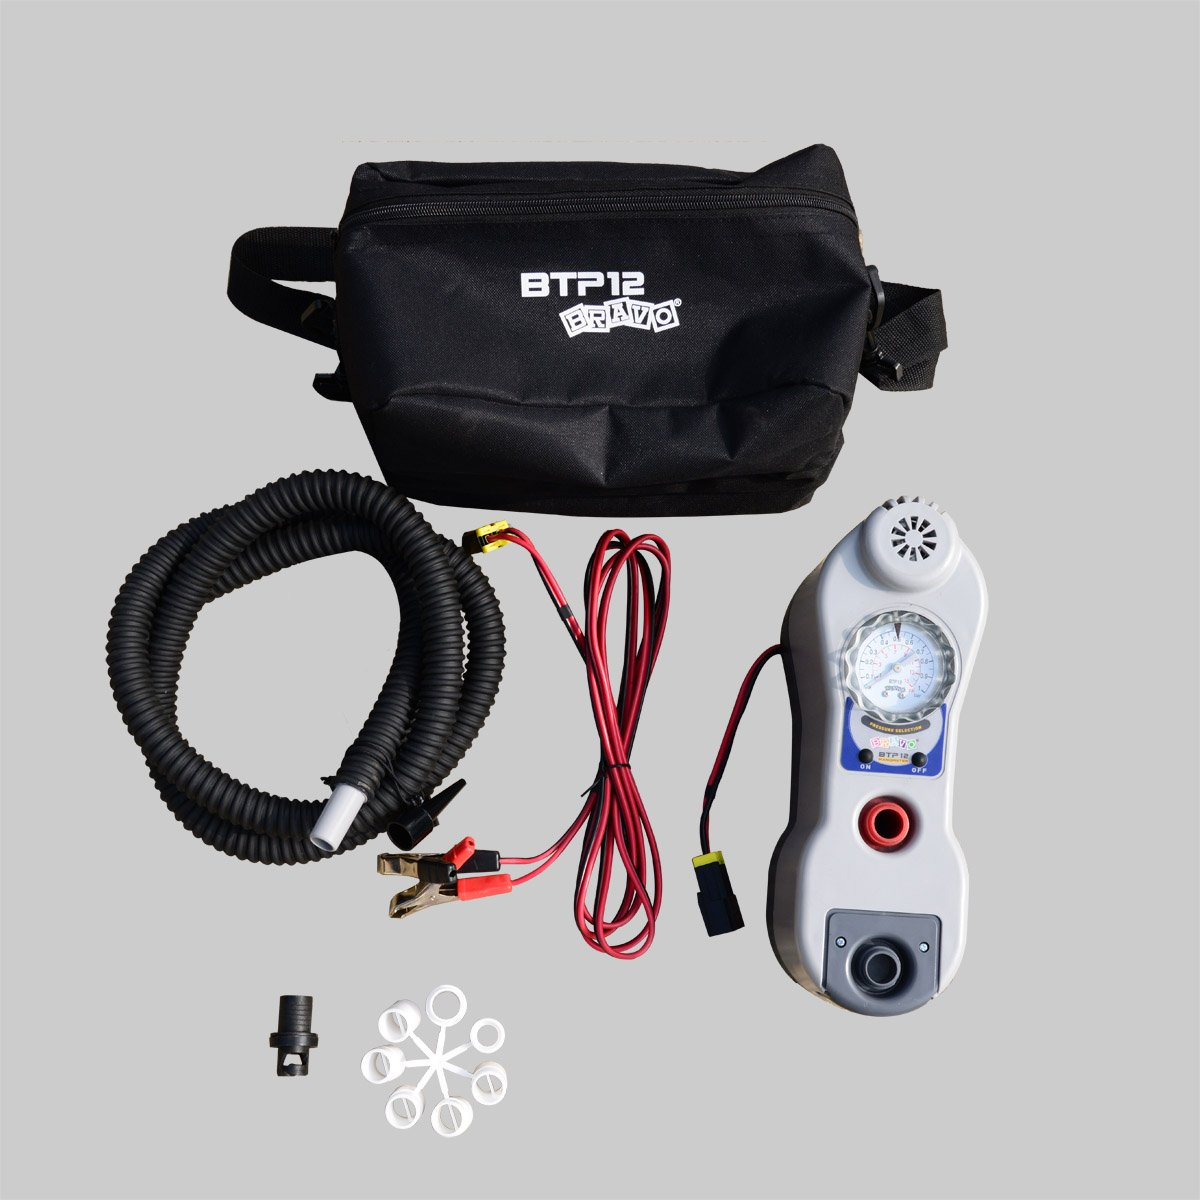 BRAVO 12V BTP12M Electric Air Pumps For Inflatable Boats SUP Boards Tents Kites by Bravo!